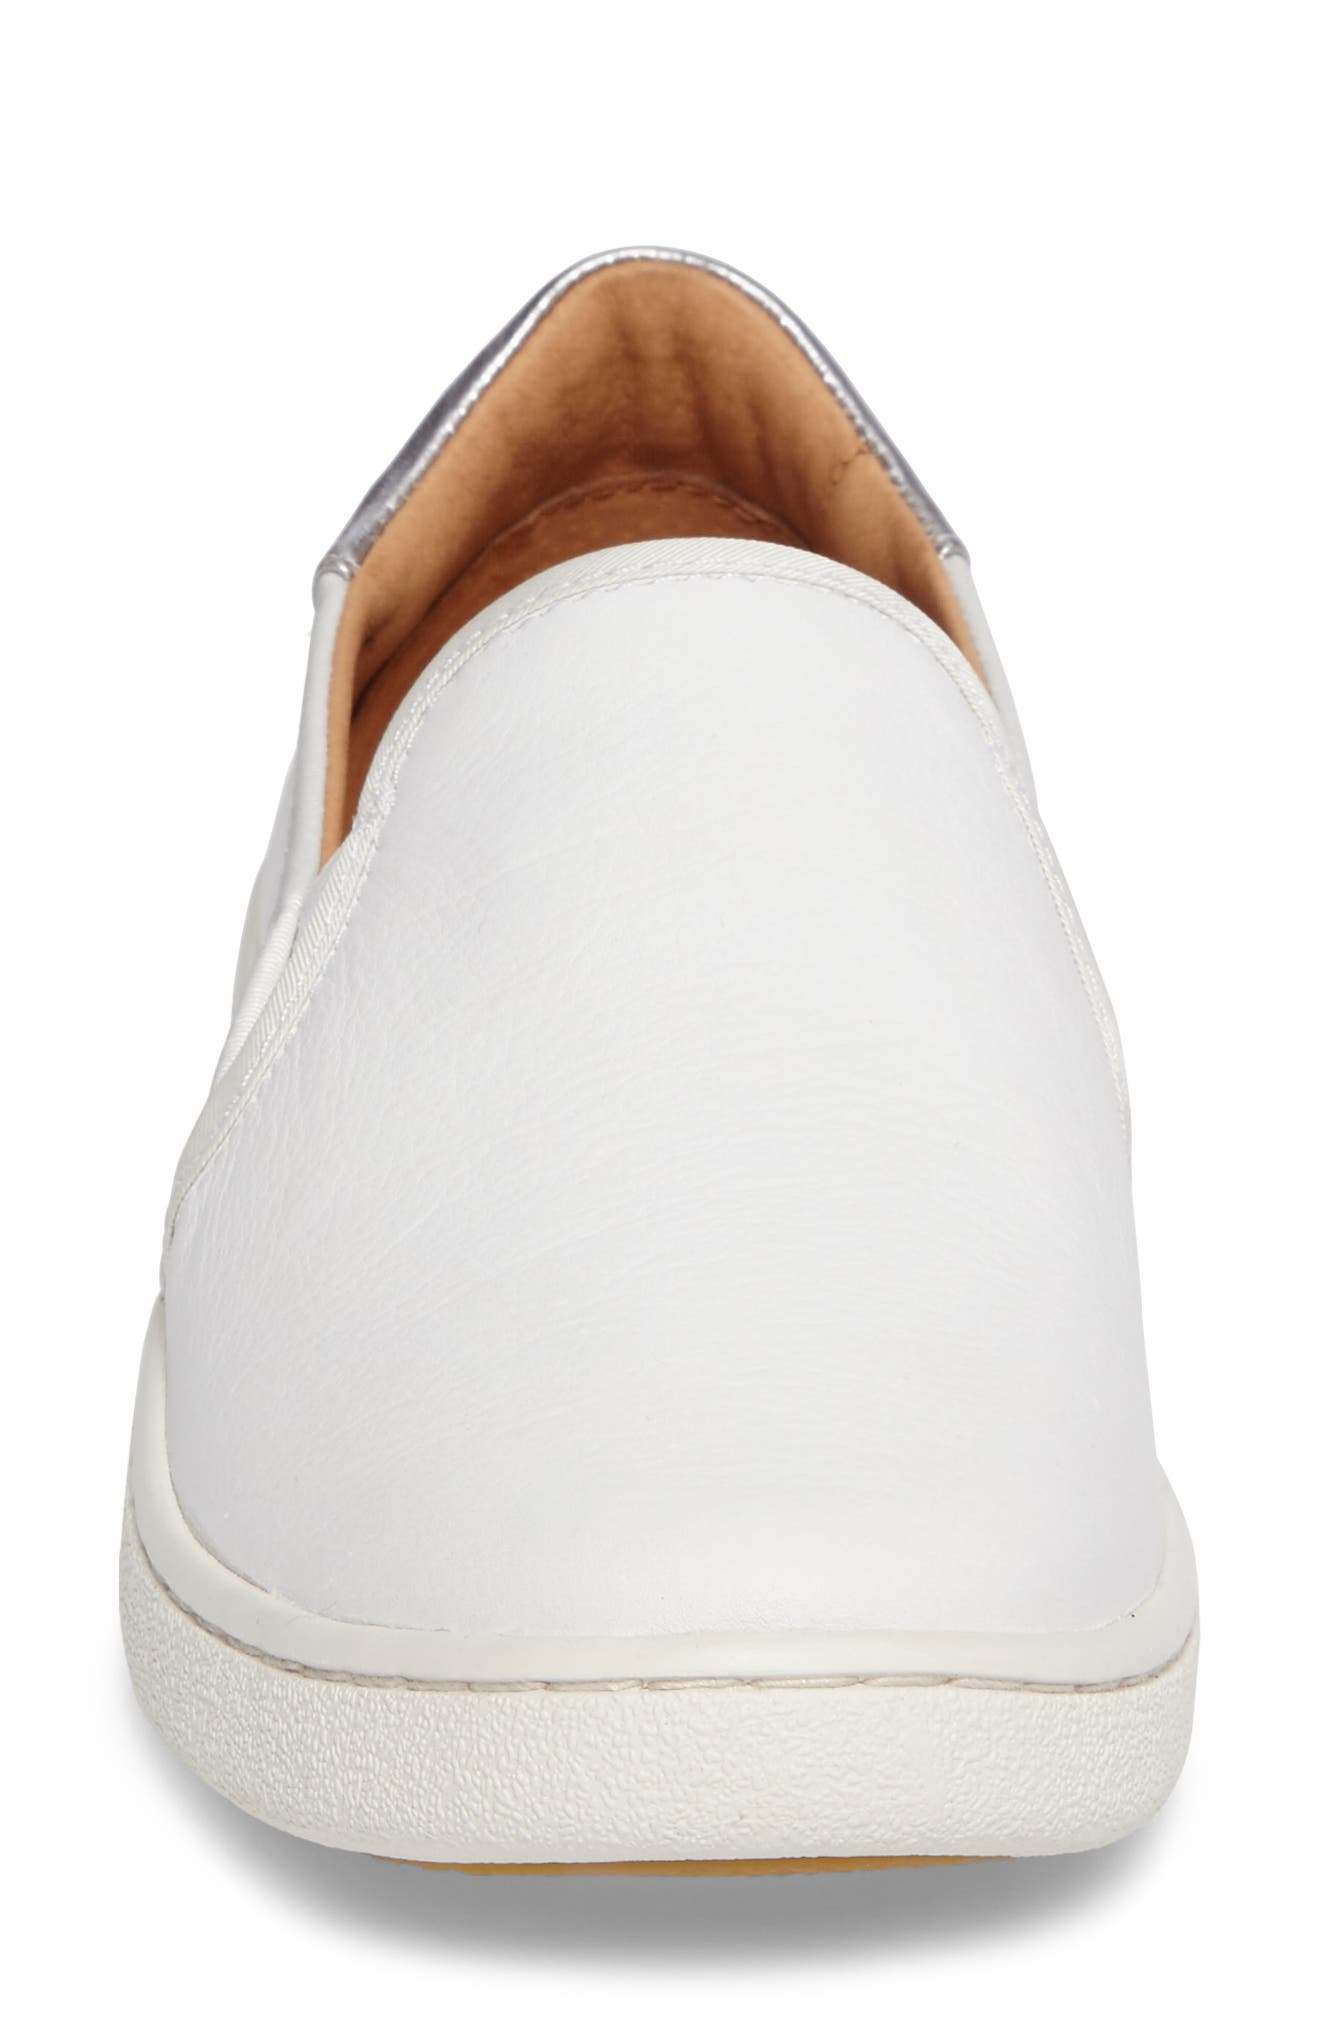 Cas Slip-On Sneaker,                             Alternate thumbnail 4, color,                             White Leather